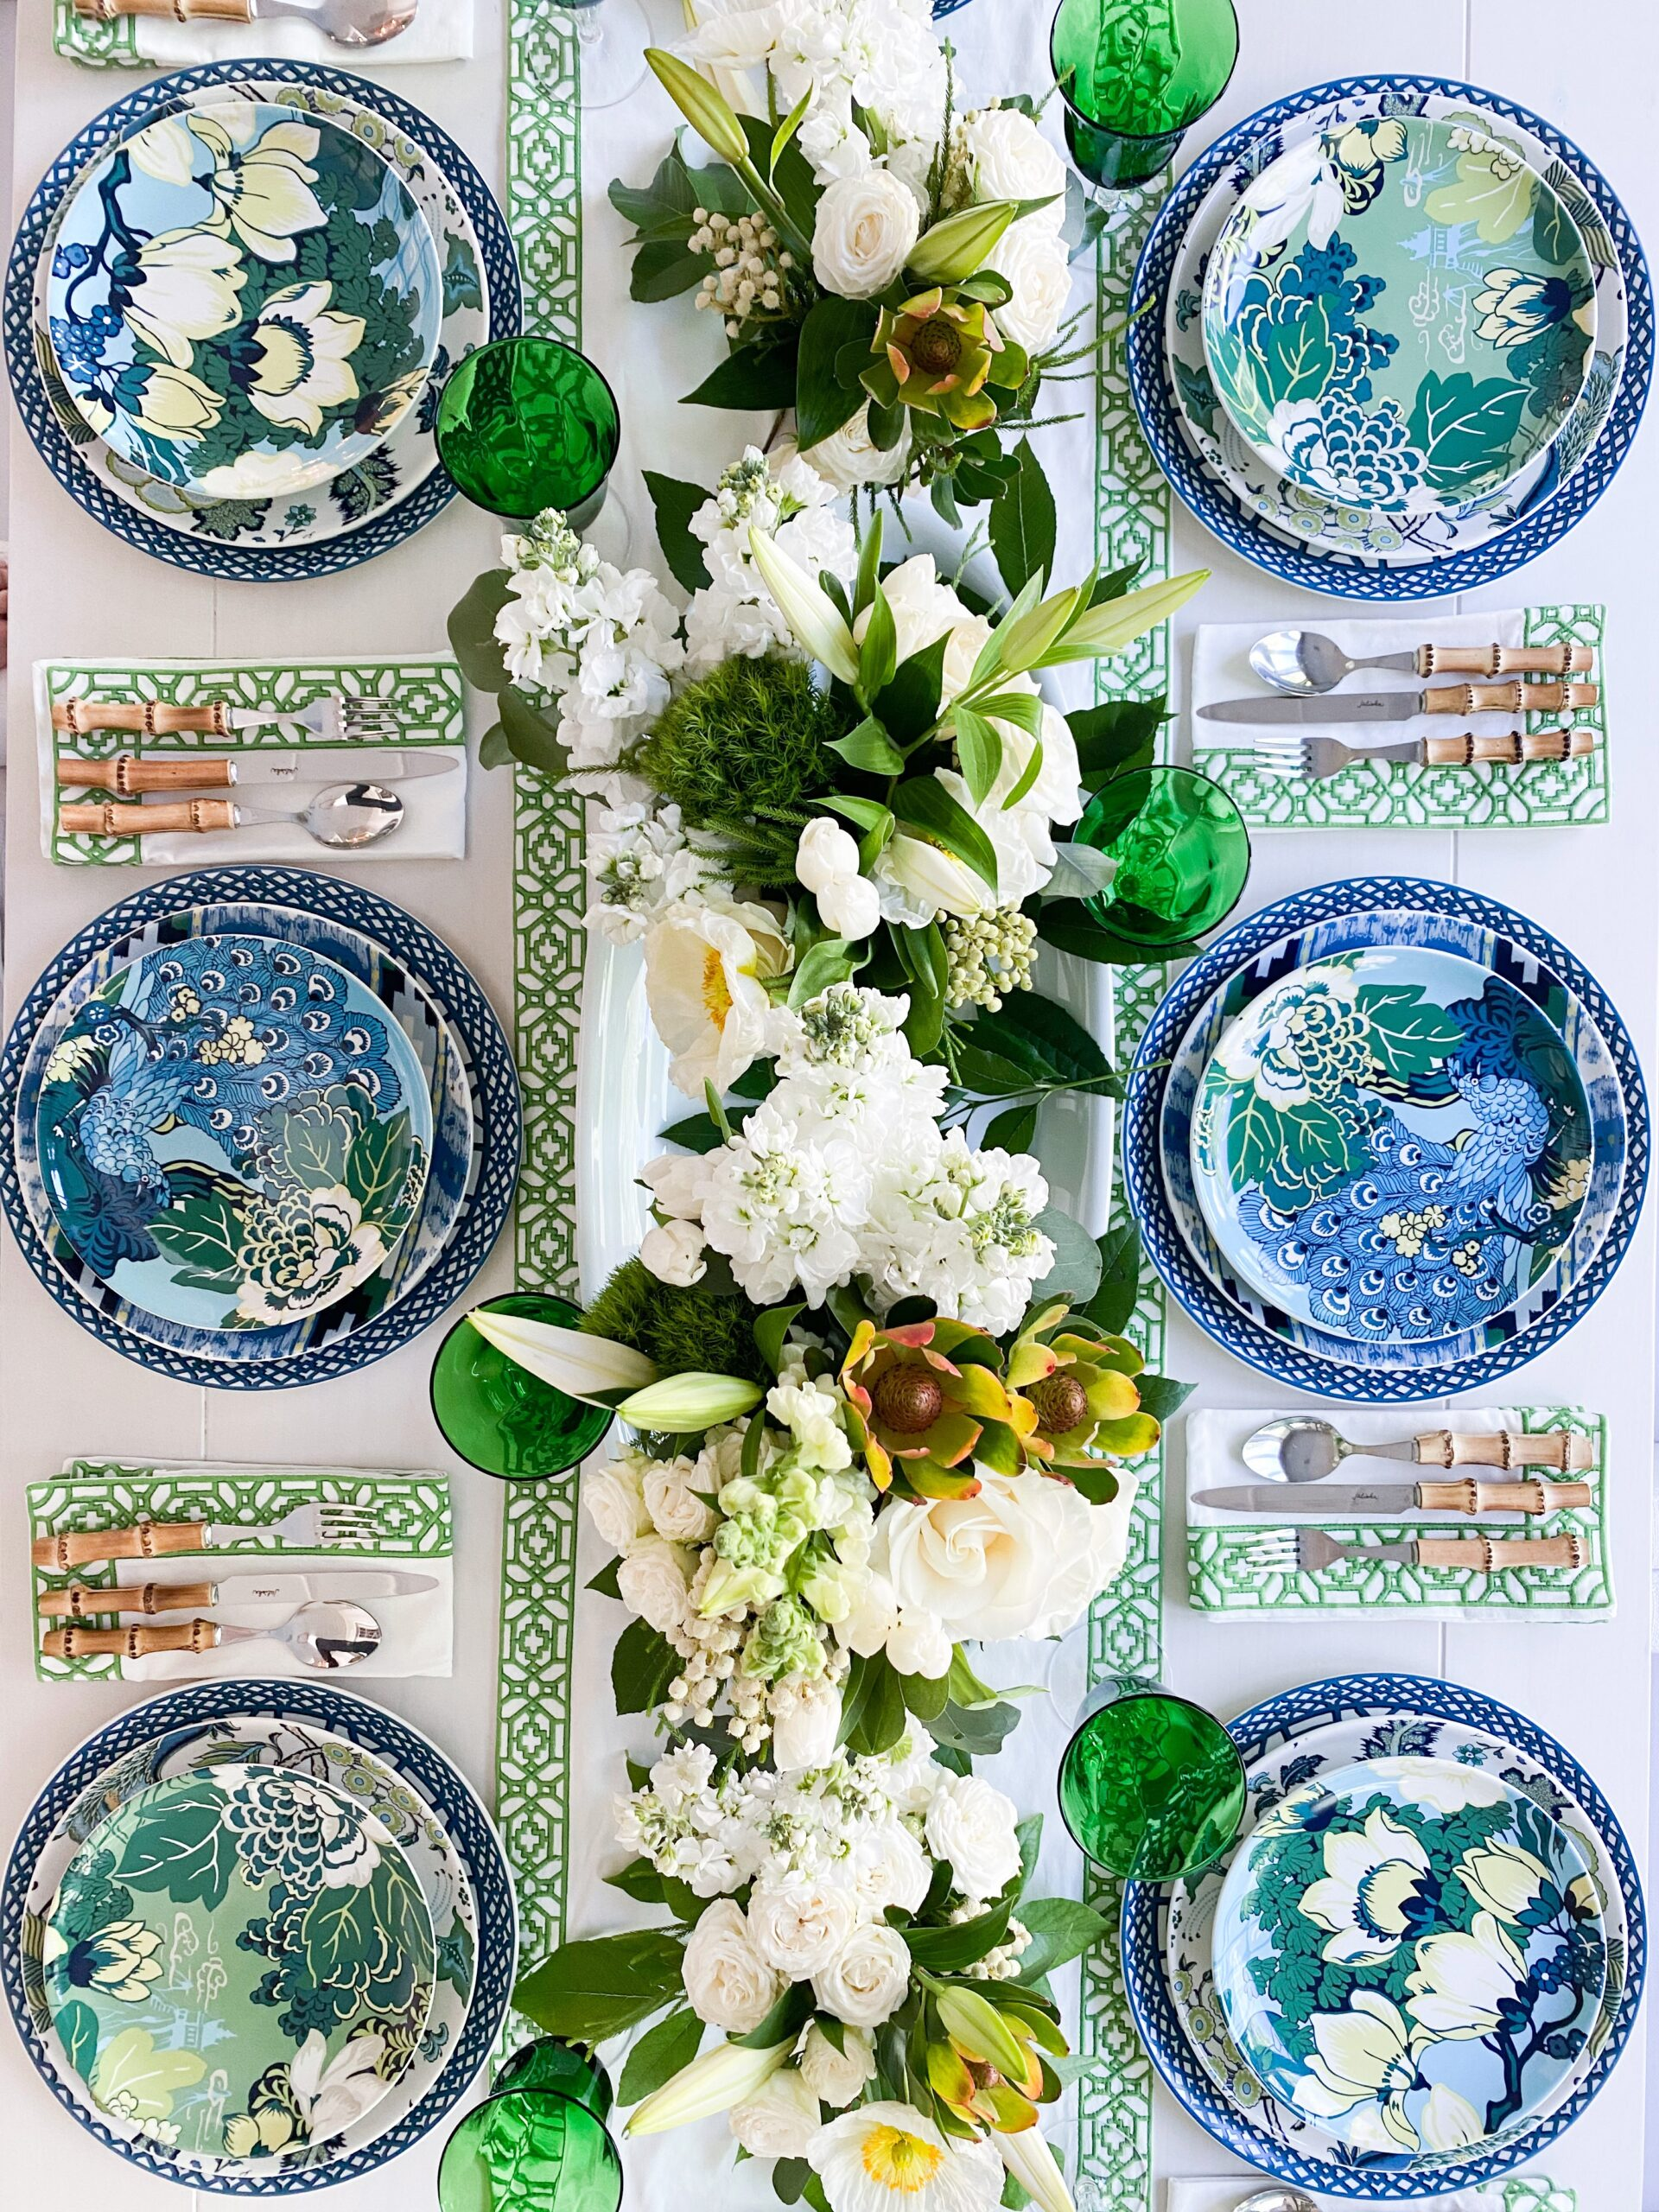 Tropical Table Decor: Peacocks and Florals